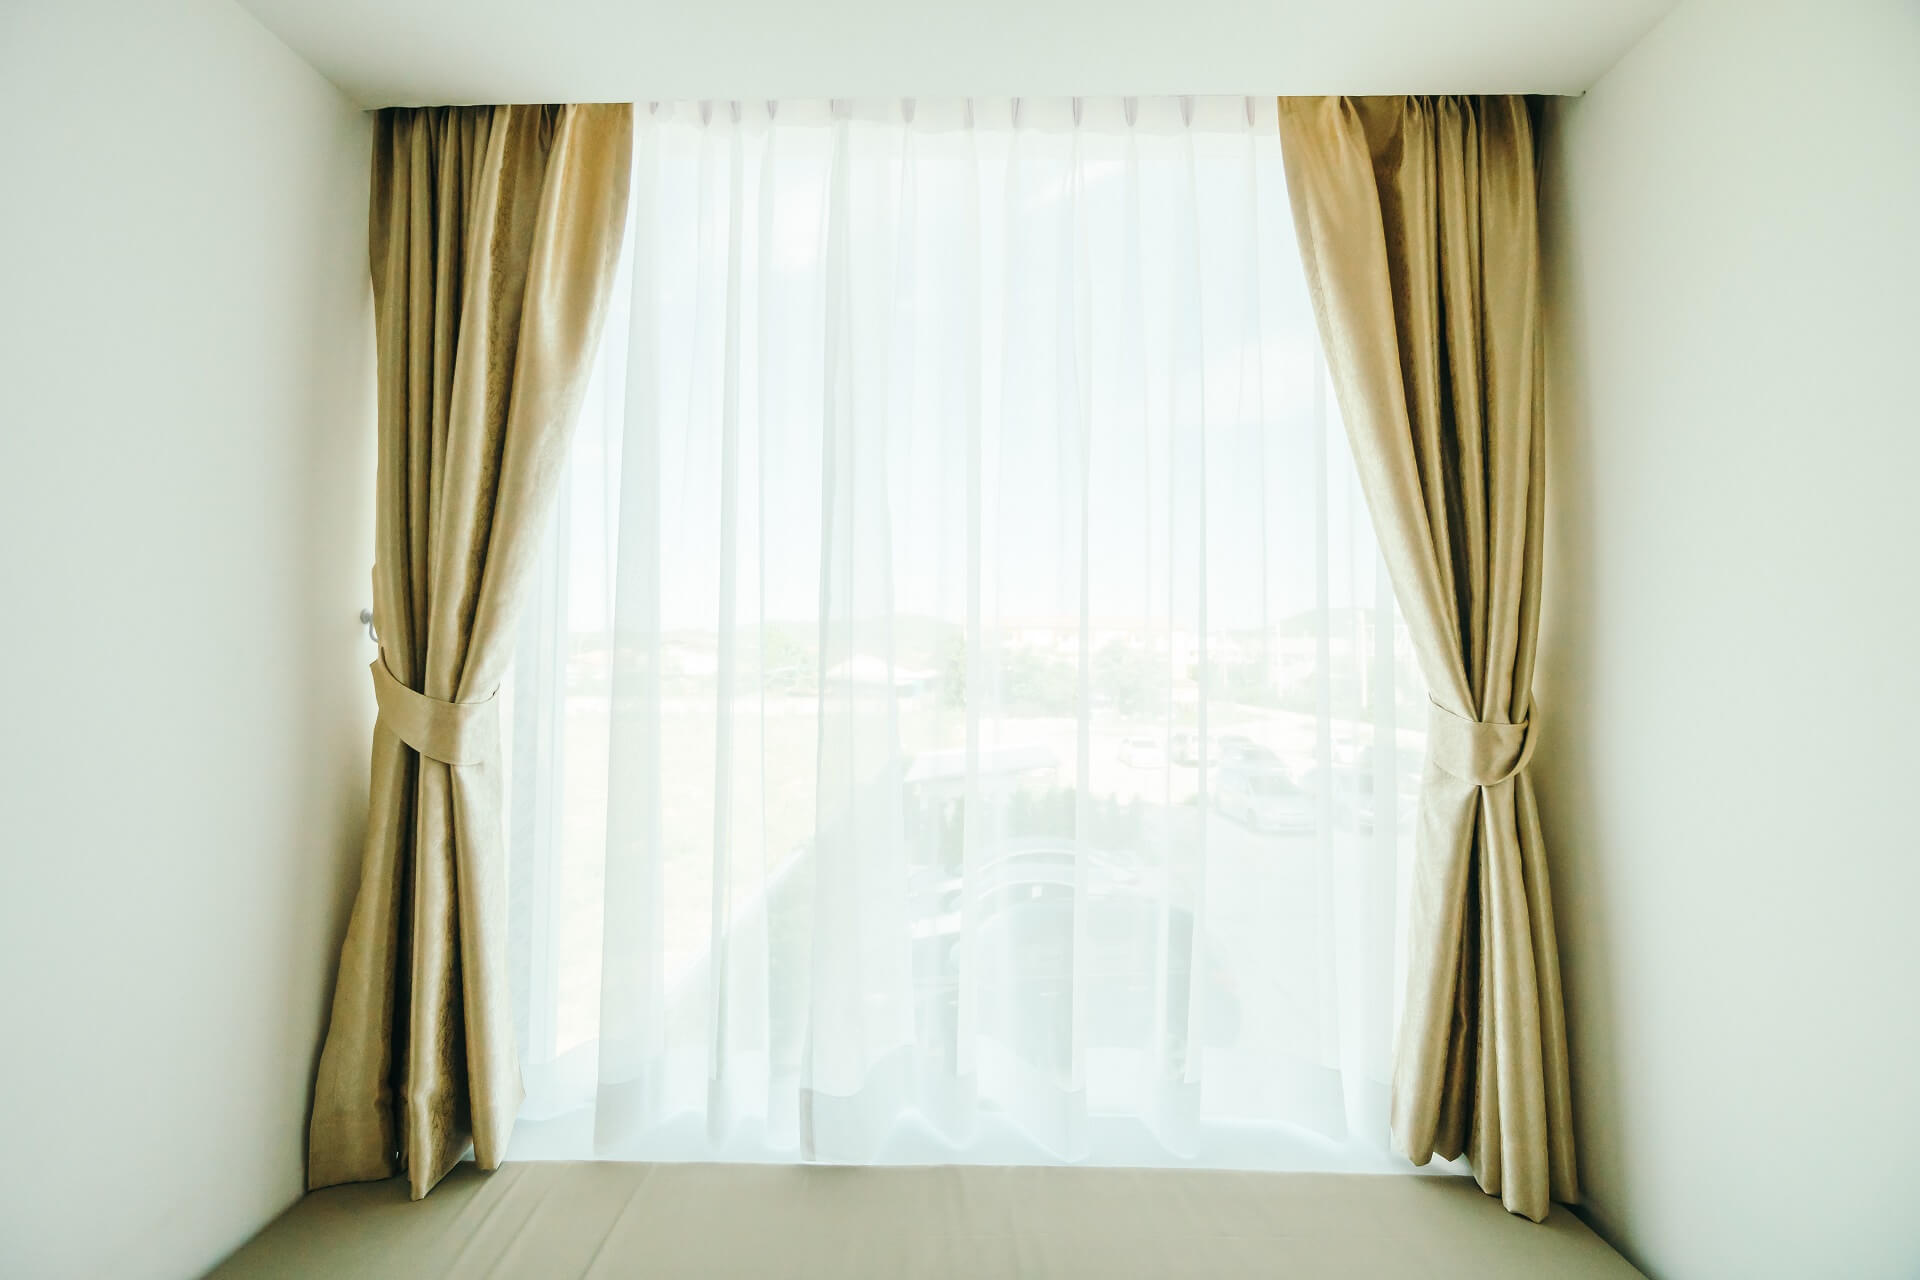 What curtains go well with white walls?